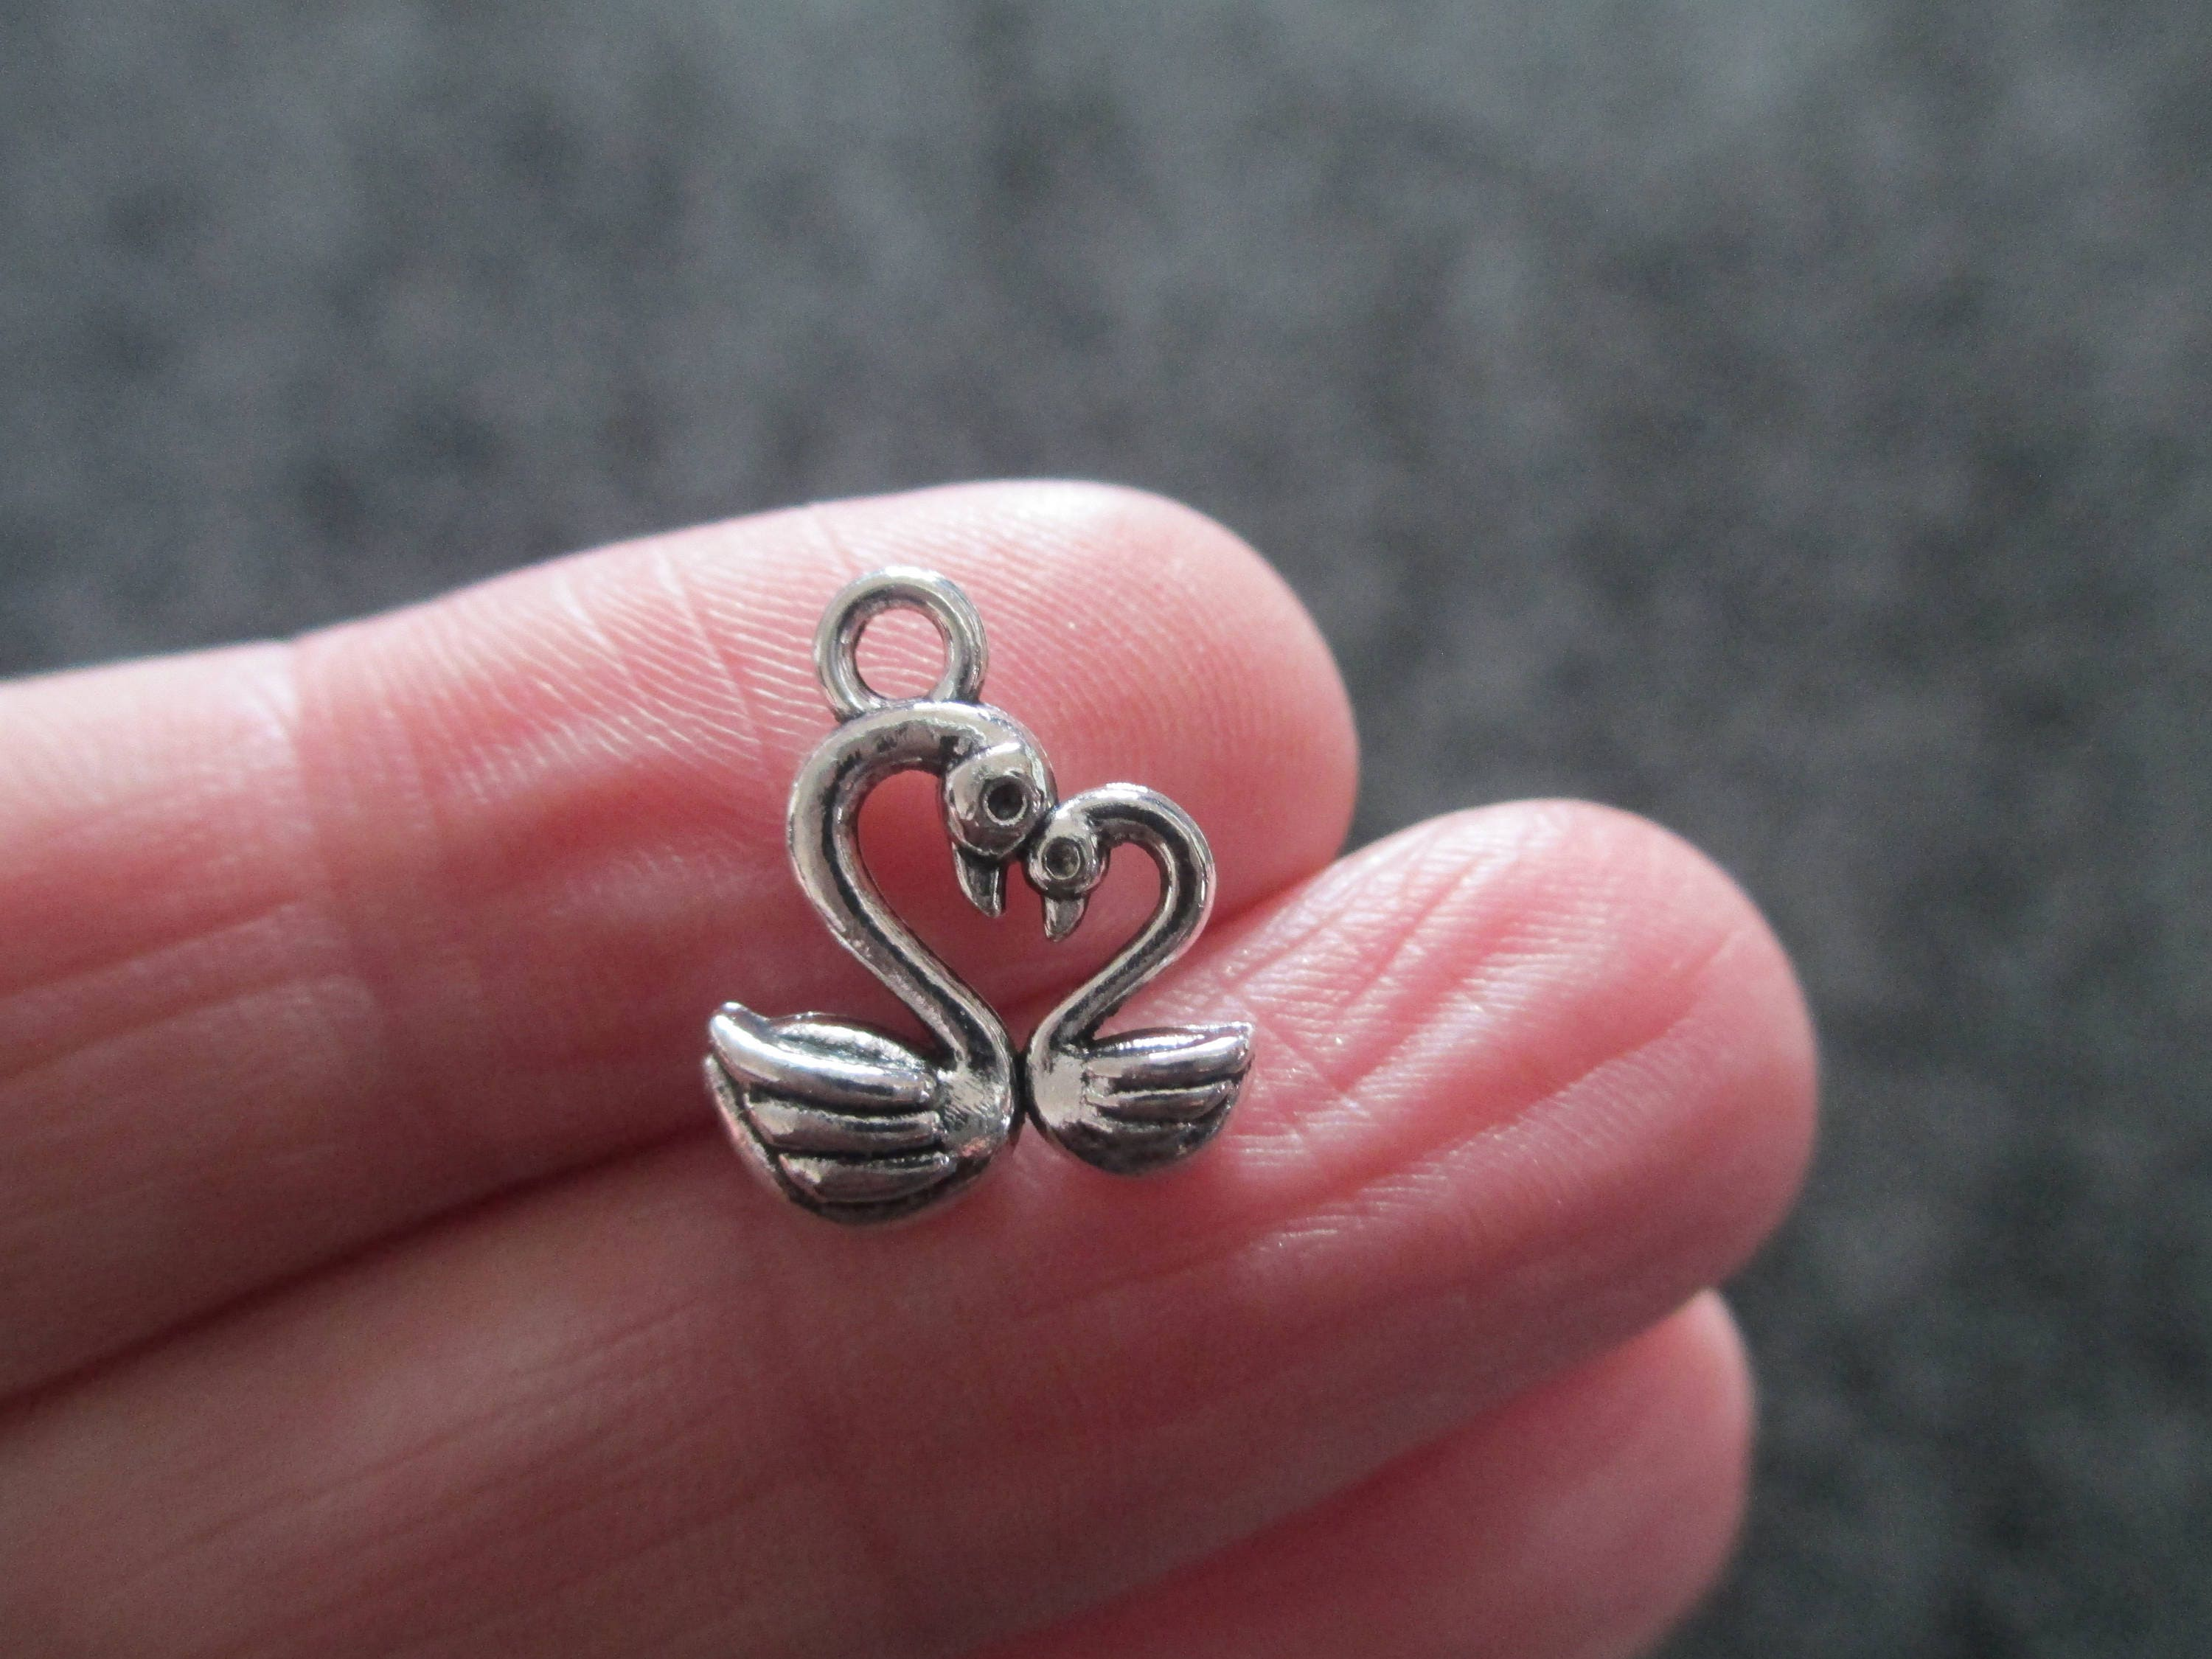 10 x Tibetan Silver HEART WITH /'I LOVE YOU WORDING/' HEART Charms Pendant Bead